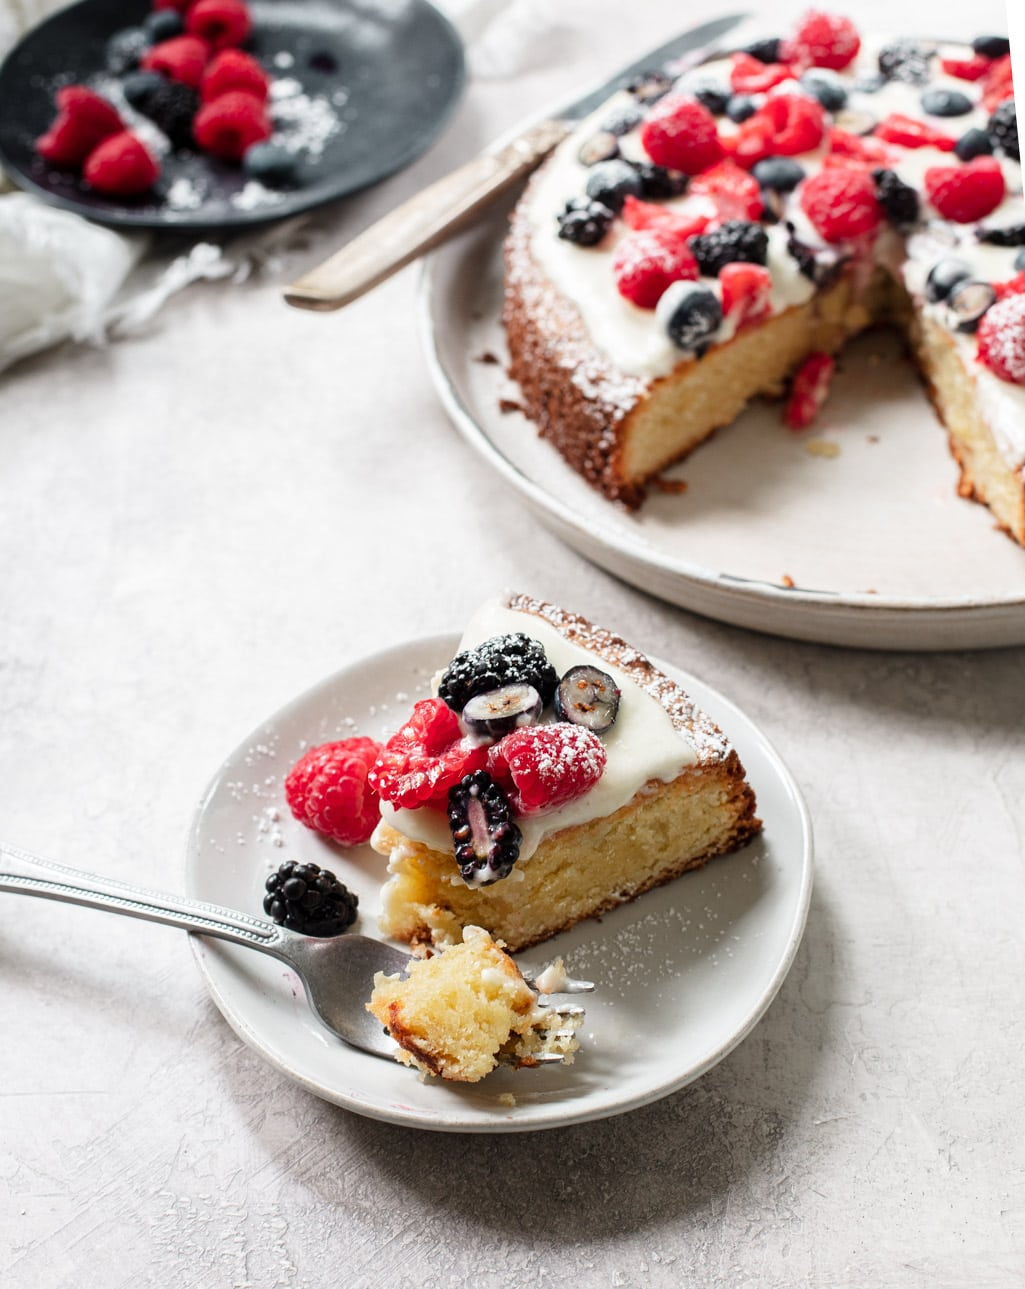 Easy Moist Almond Cake Recipe with Summer Berries and Cream Cheese Icing